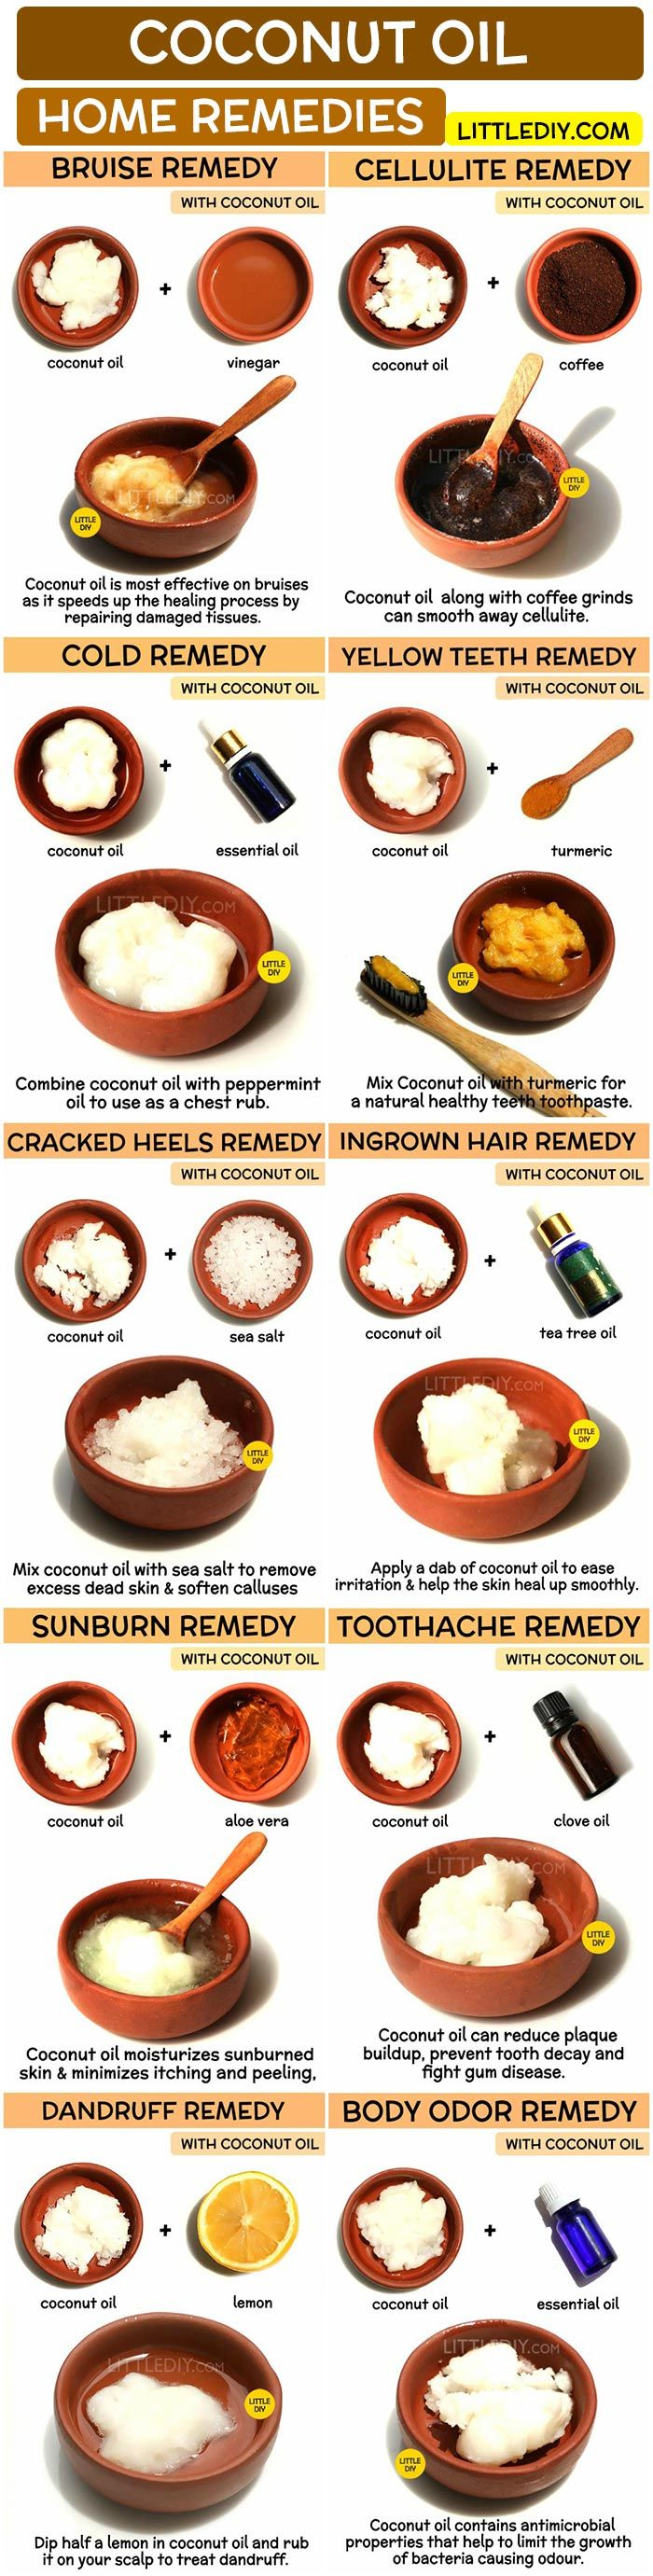 AMAZING COCONUT OIL HOME REMEDIES